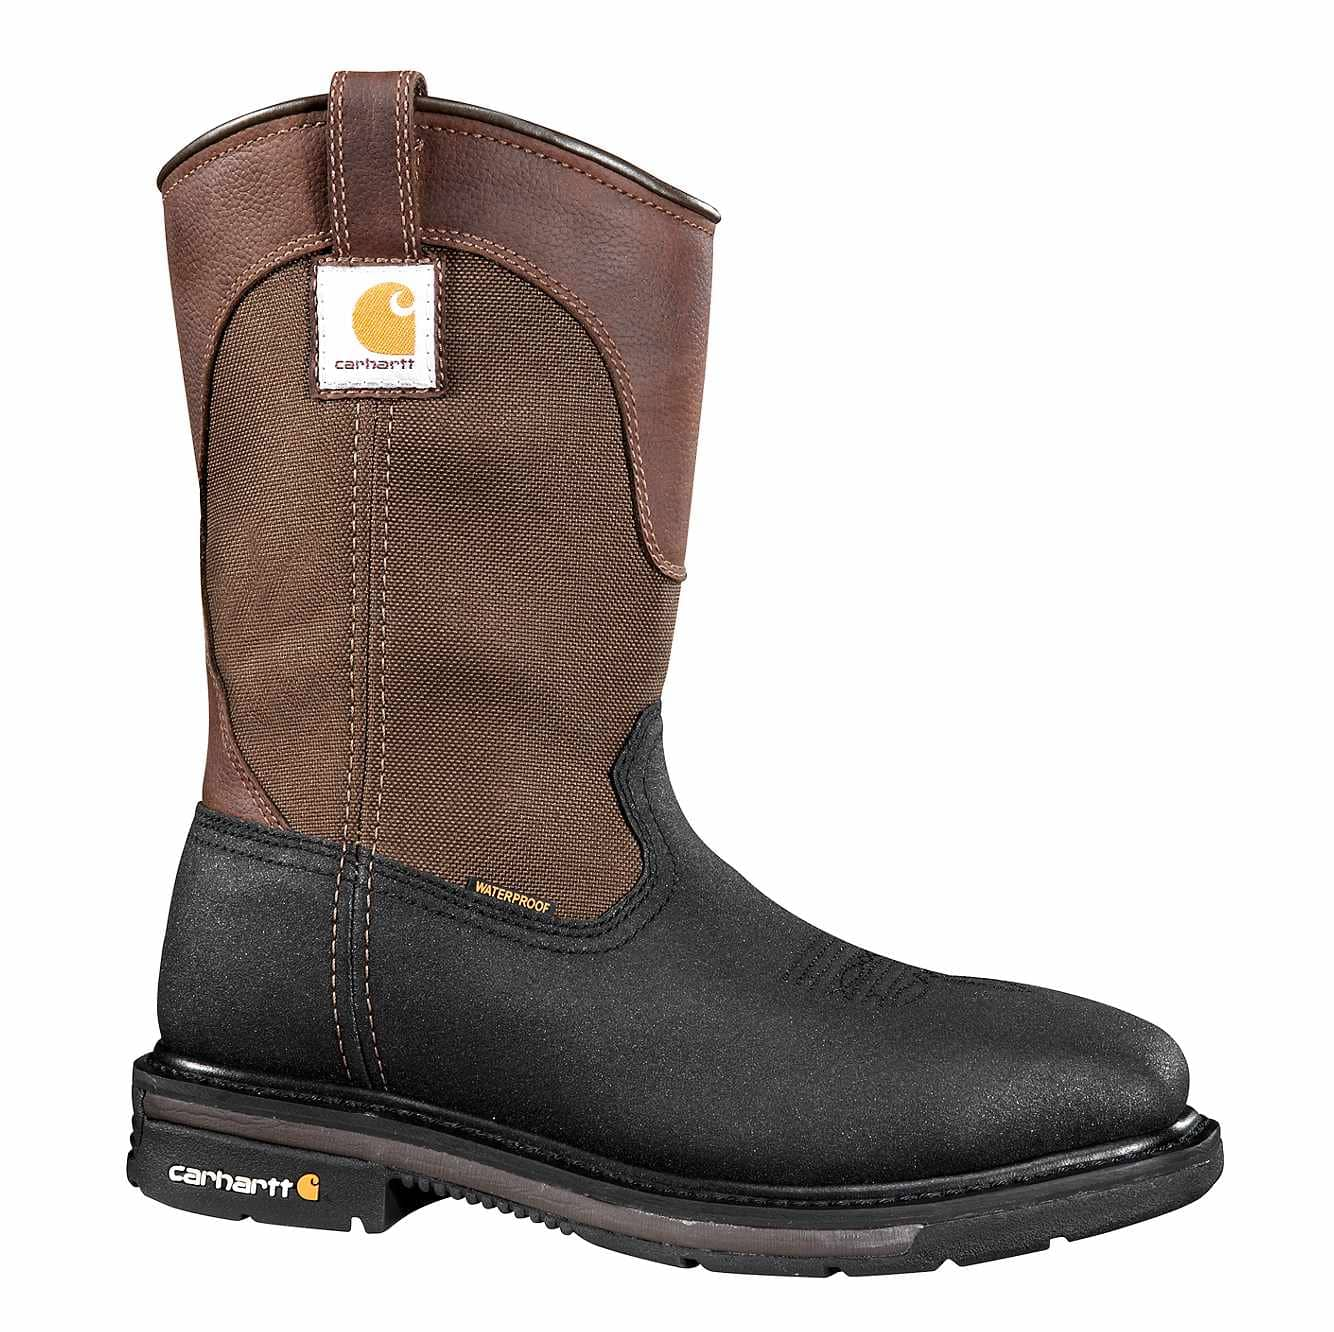 Picture of 11-Inch Square Steel Toe Wellington Boot in Brown Oil Tanned/Black Coated